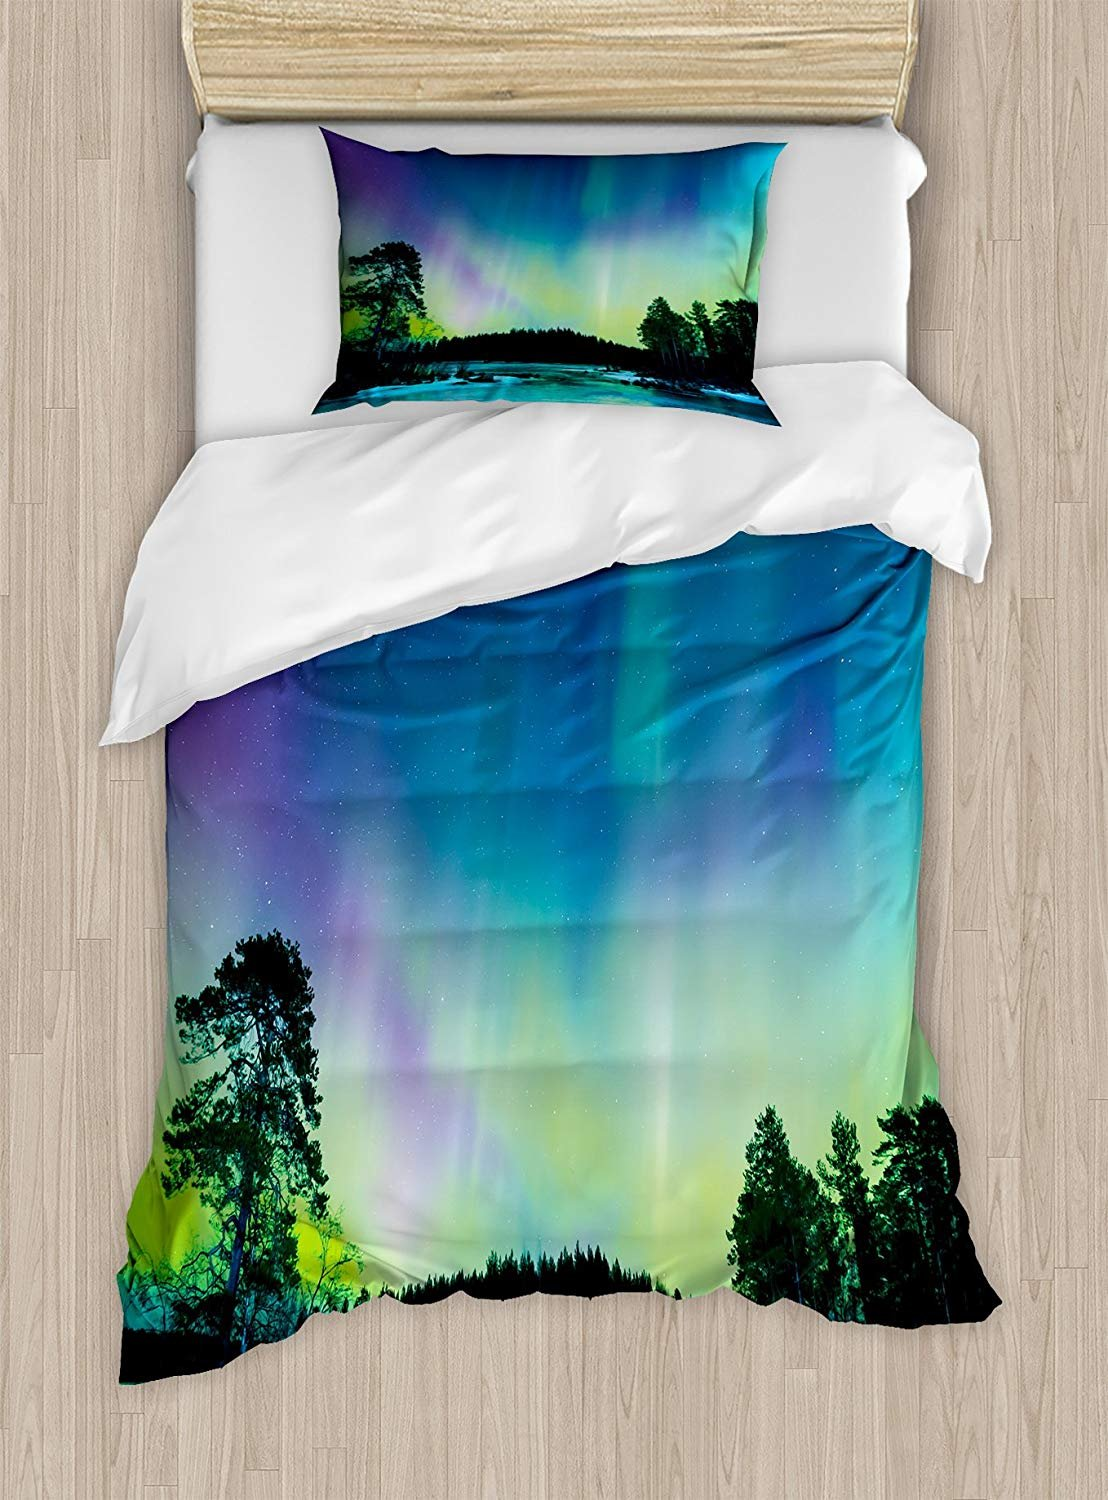 Fantasy Star Twin XL Extra Long Bedding Set,Aurora Borealis Duvet Cover Set,Sky Over Lake Surrounded Forest Woods Hemisphere Print,Include 1 Flat Sheet 1 Duvet Cover and 2 Pillow Cases